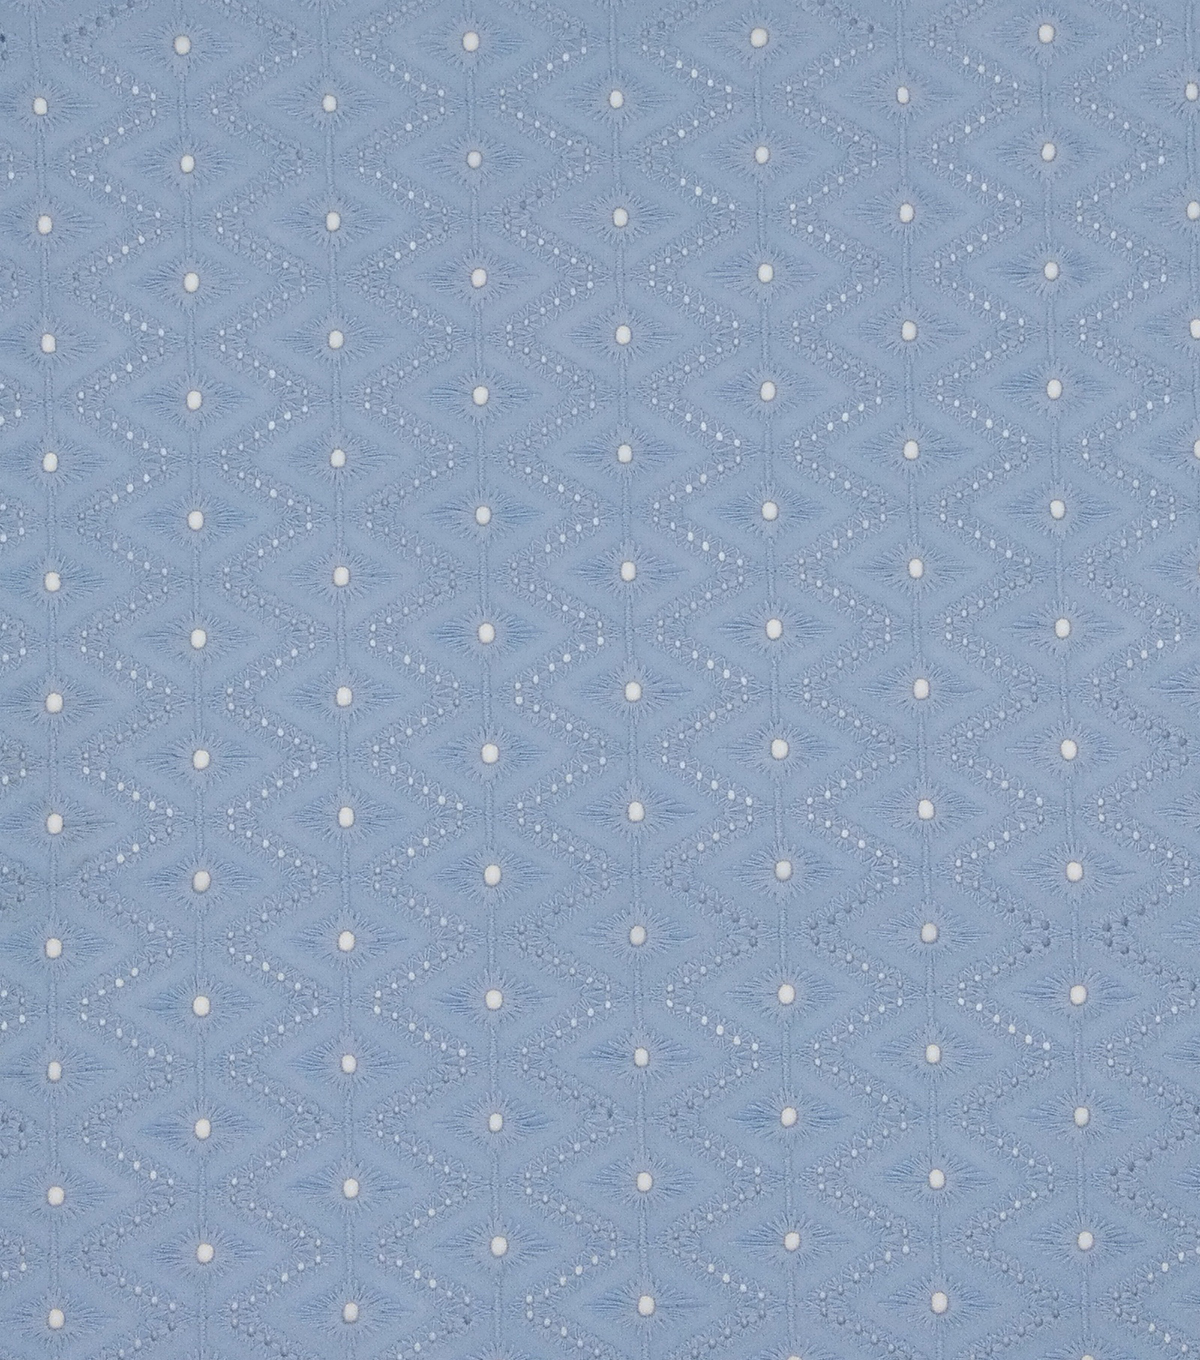 Specialty Cotton Diamond Eyelet Fabric-Powder Blue